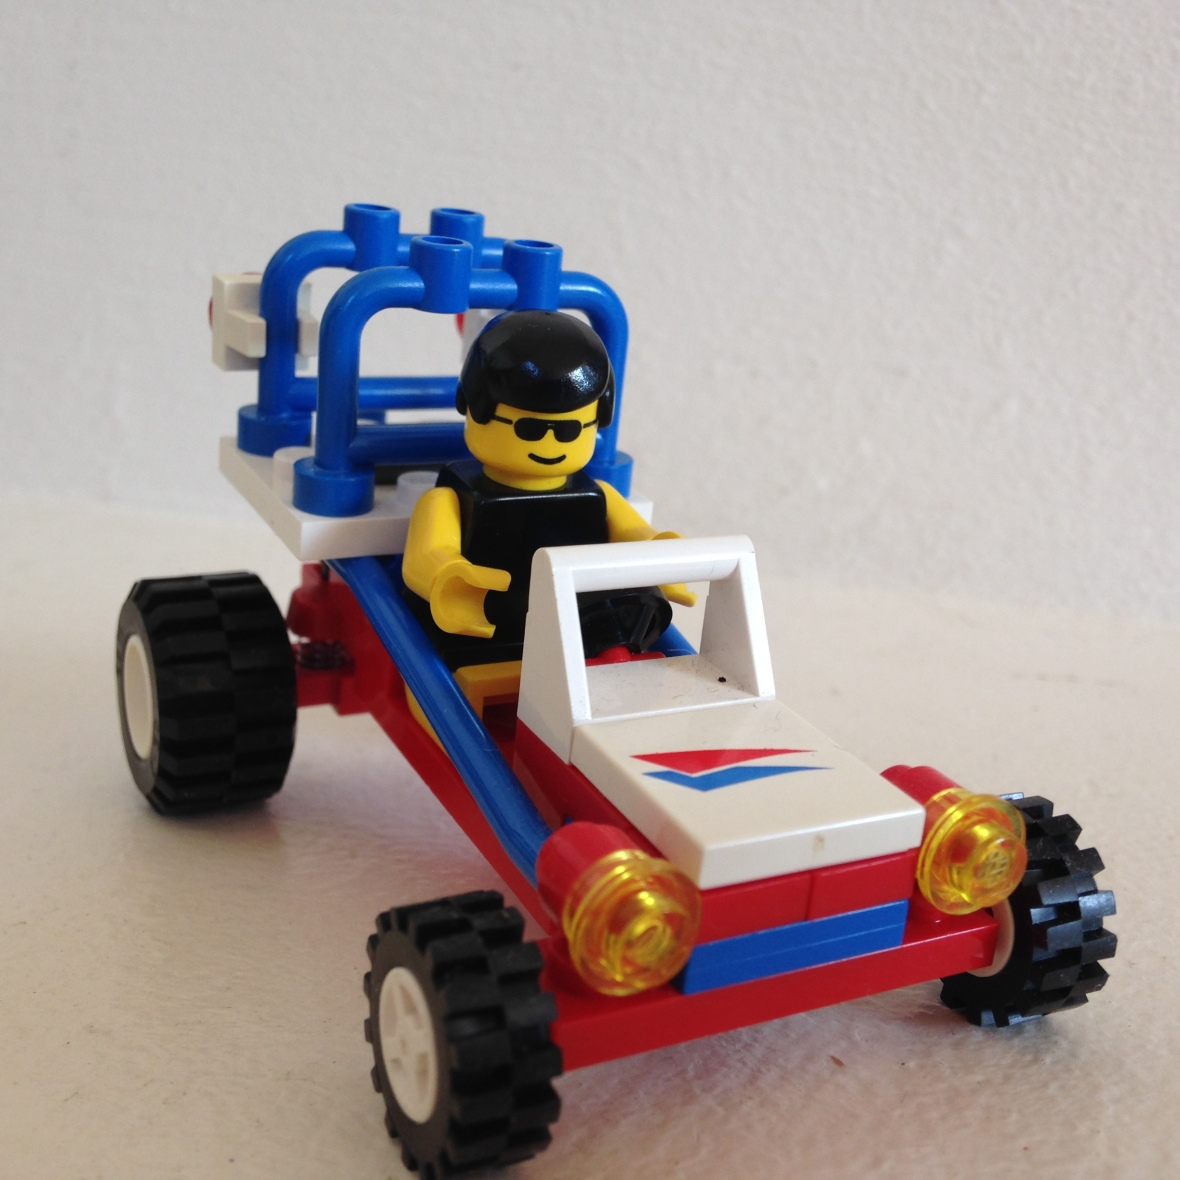 Image of Lego set 6534 Beach Bandit Lego Beach Buggy and Windsurfer